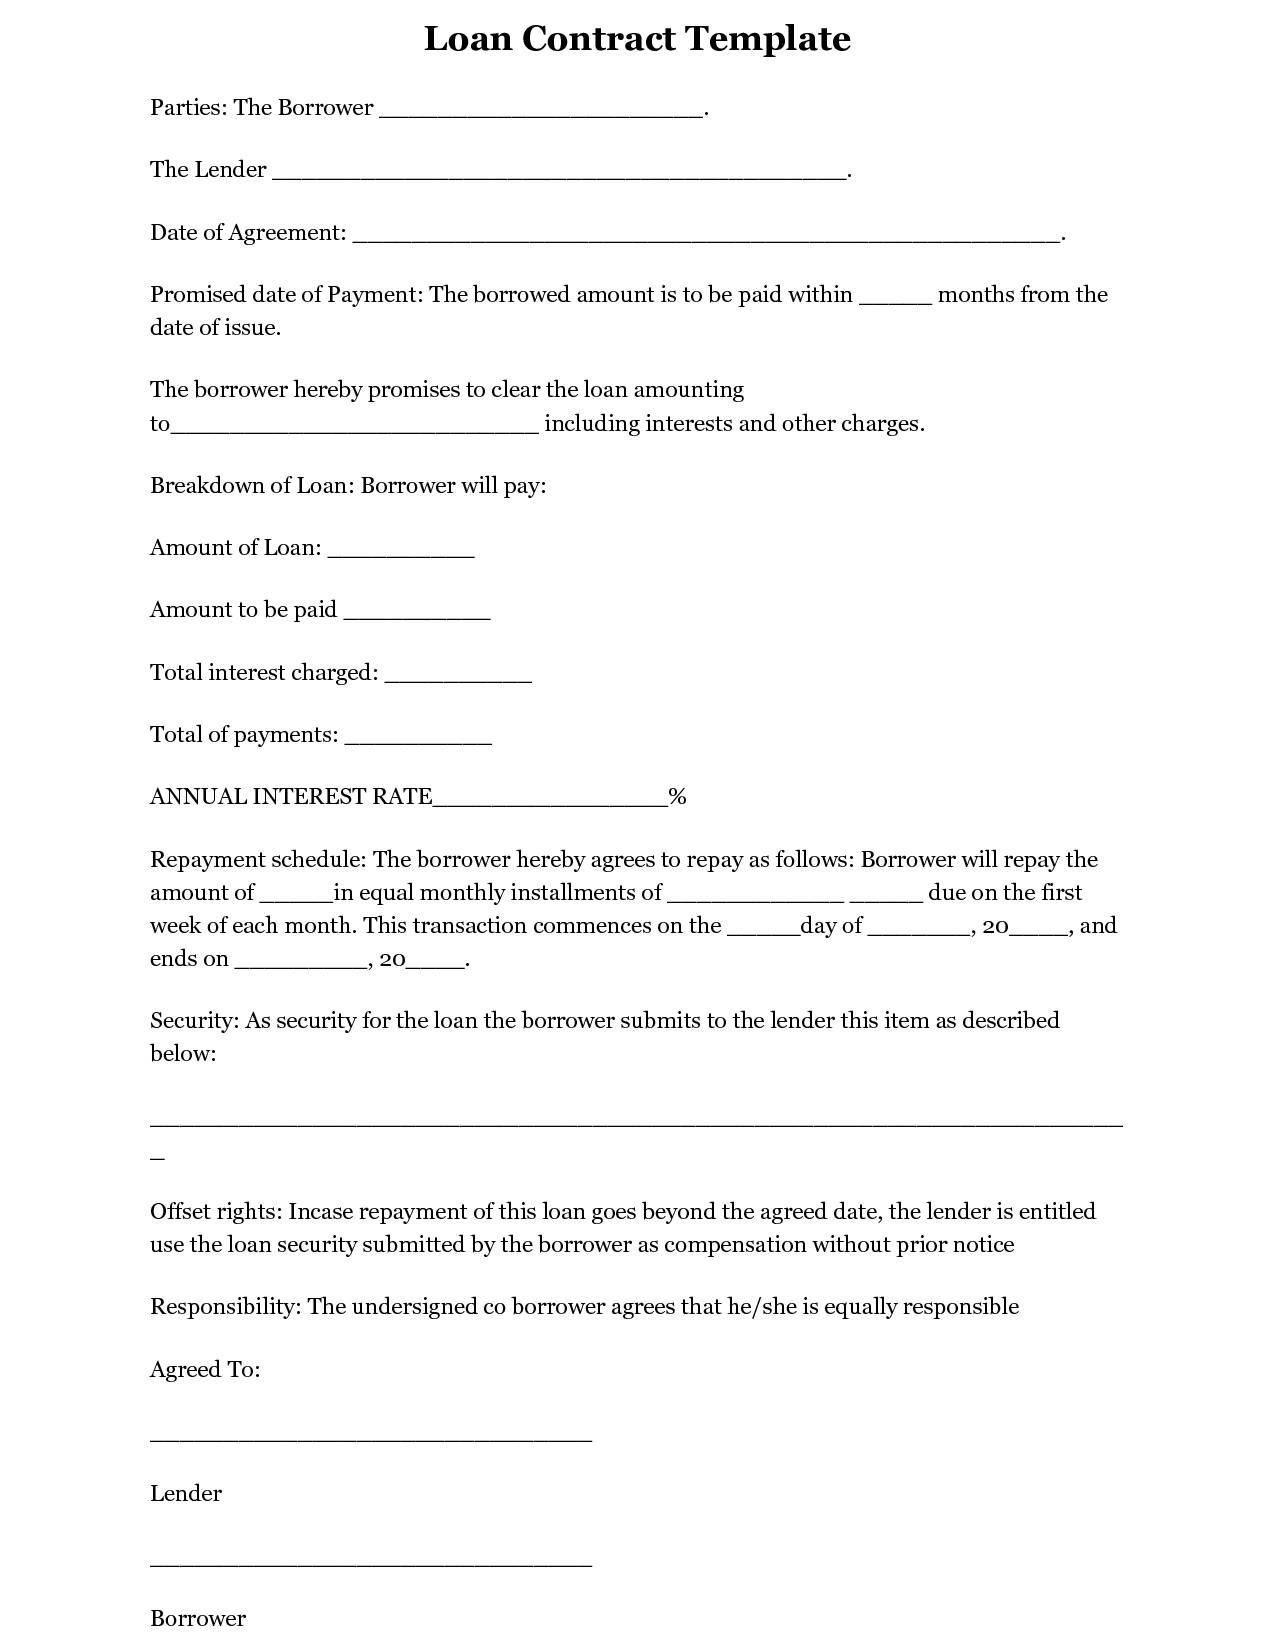 Simple Loan Contract Template Free